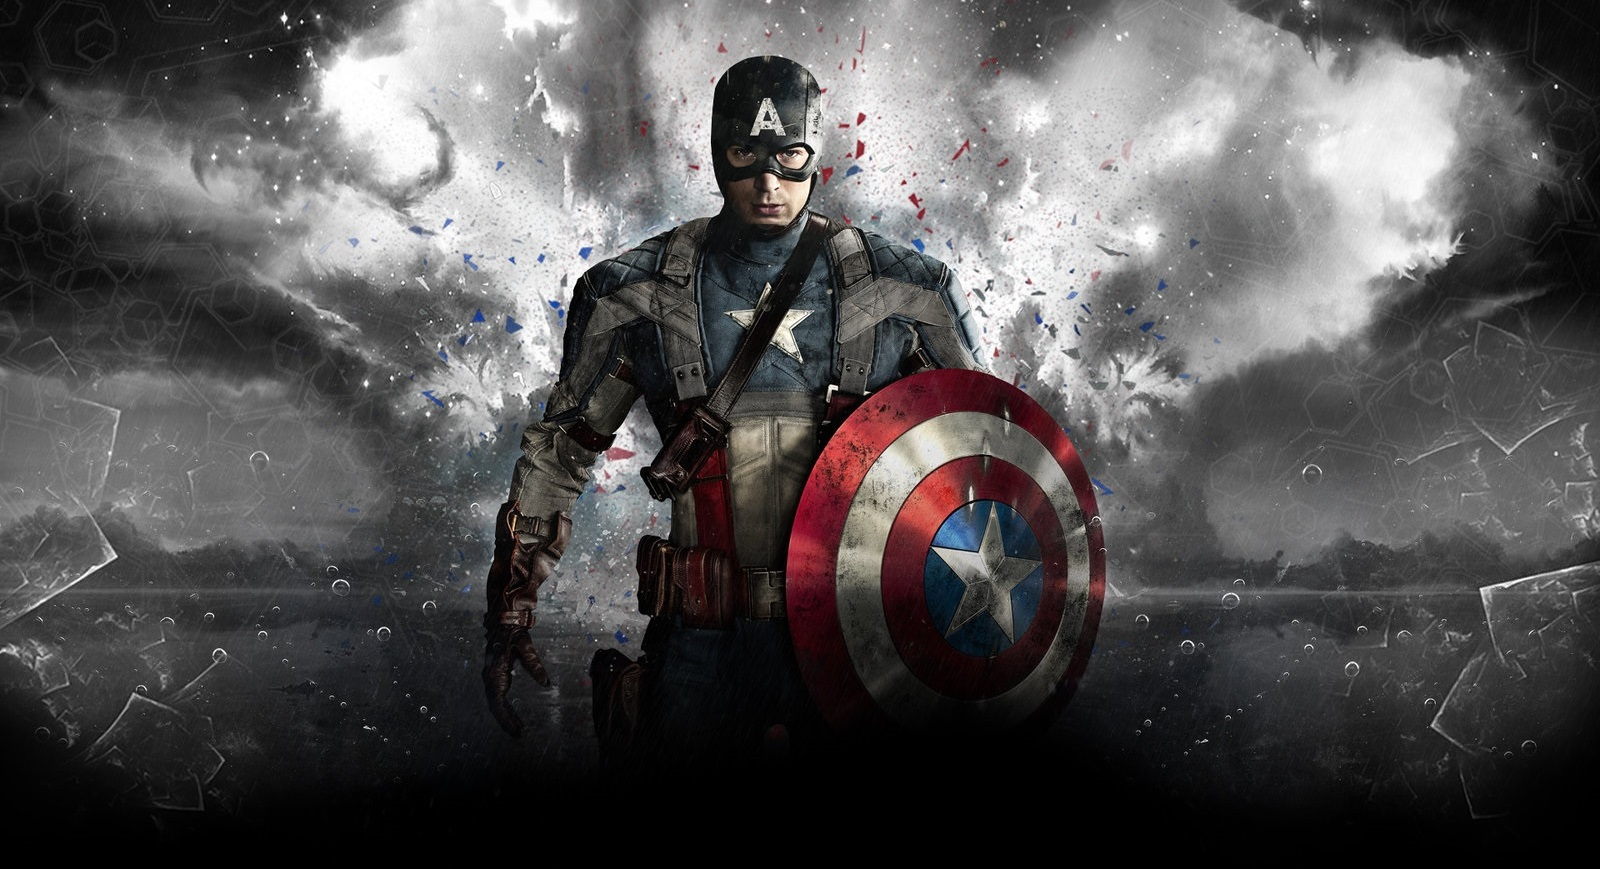 Hd wallpaper captain america - Captain America Hd Wallpaper